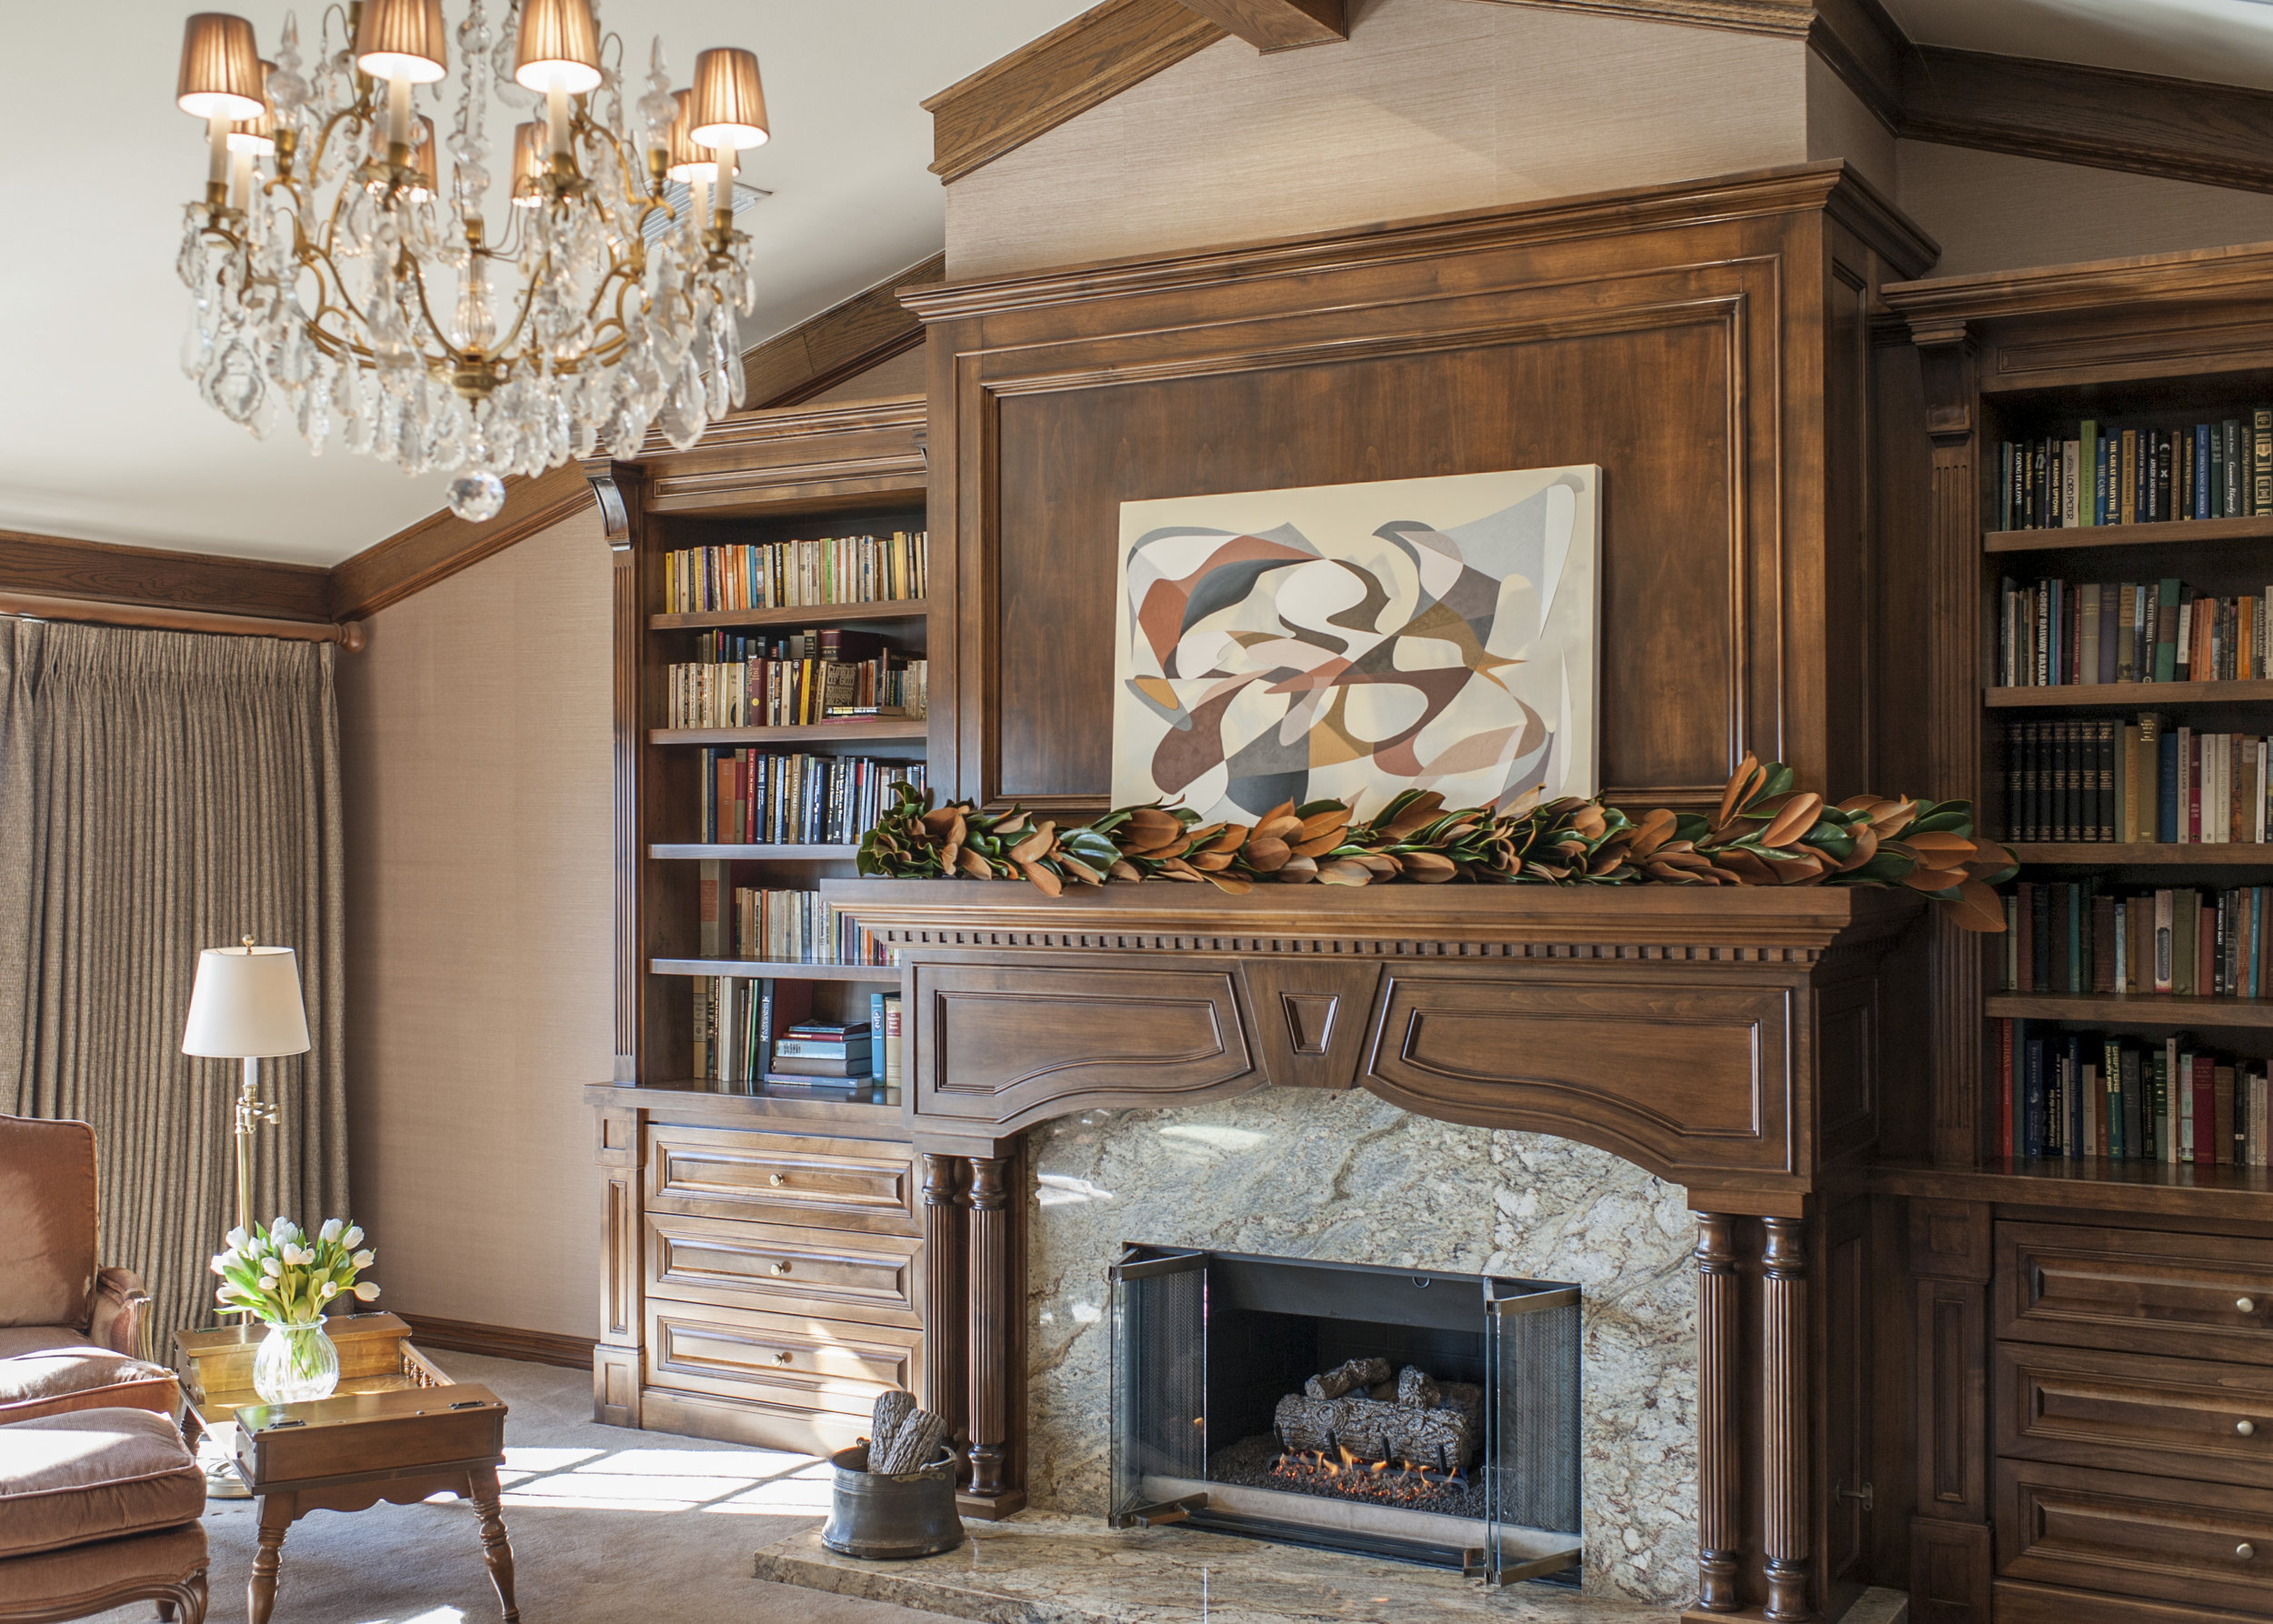 Sarah-barnard-design-traditiondal-palisades-master-bedroom-fireplace.jpg